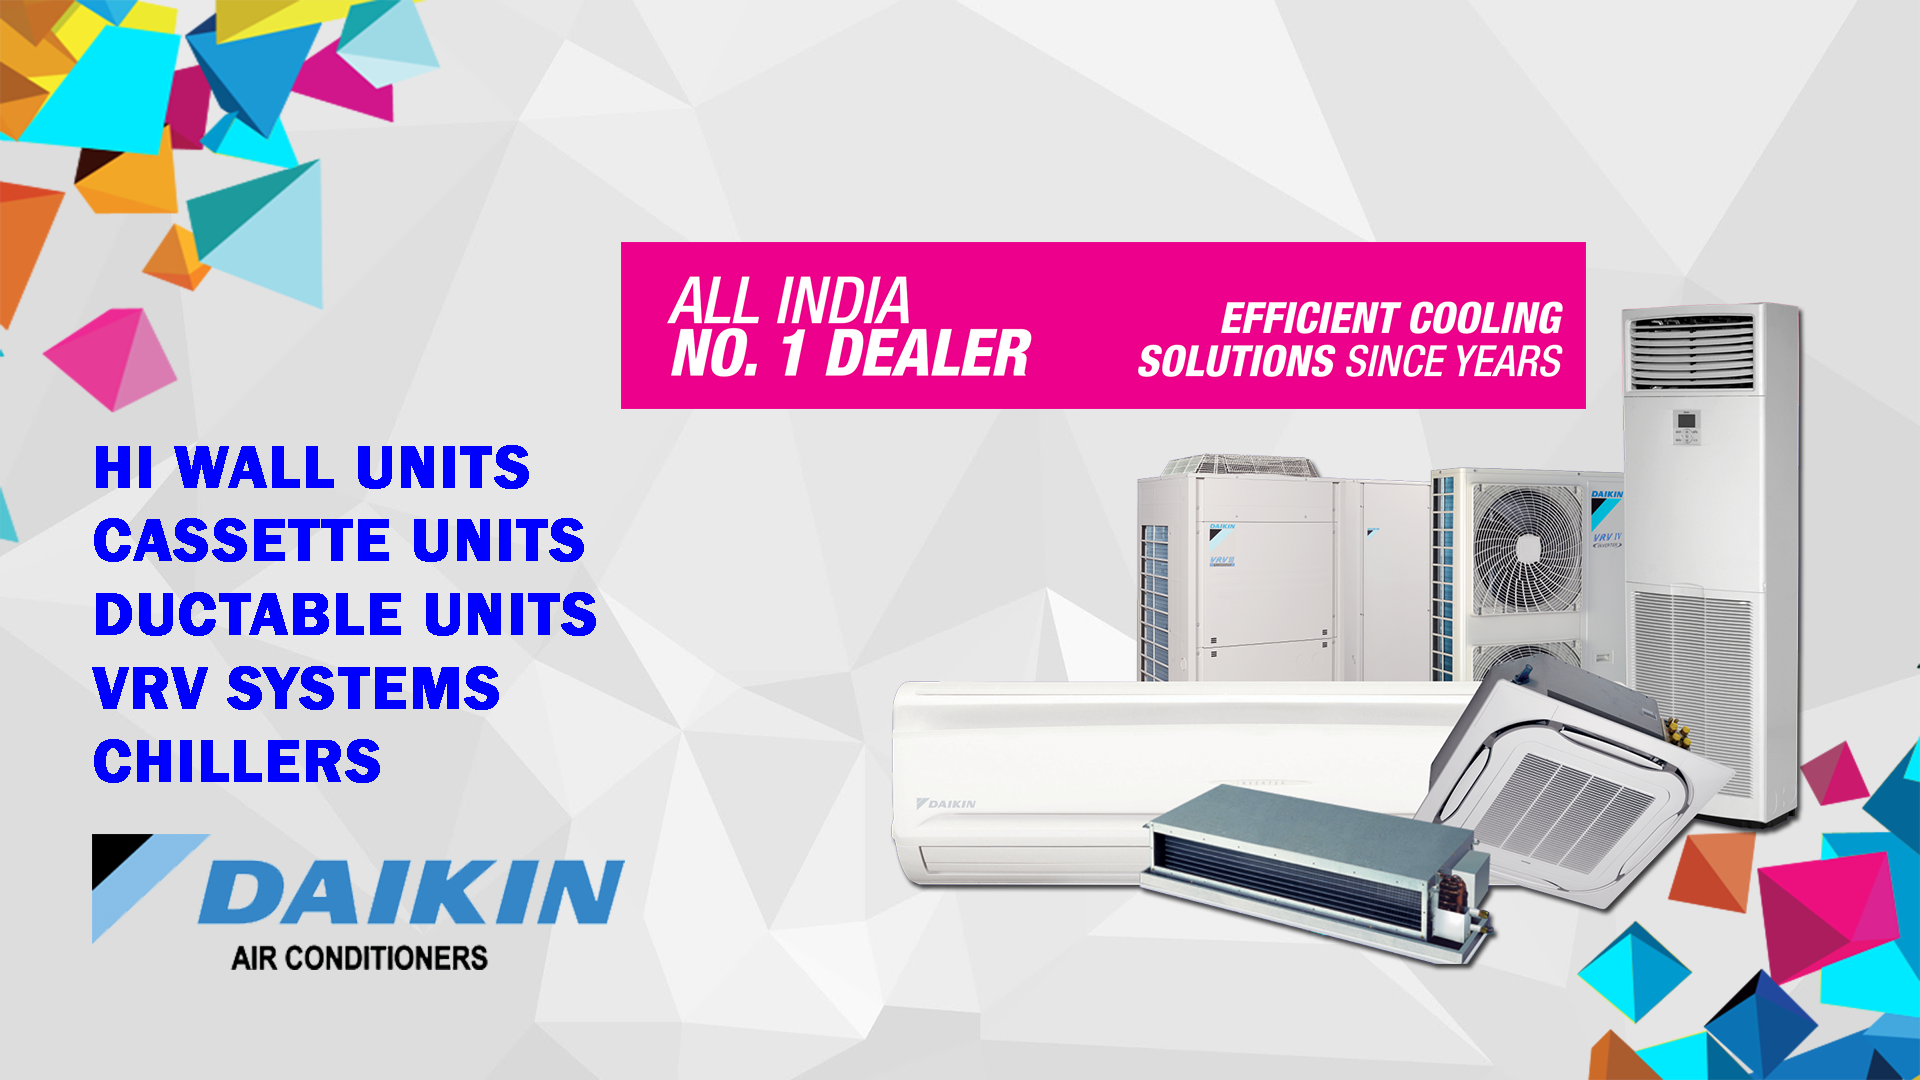 Future Solution is most famous Daikin AC Dealers, Daikin